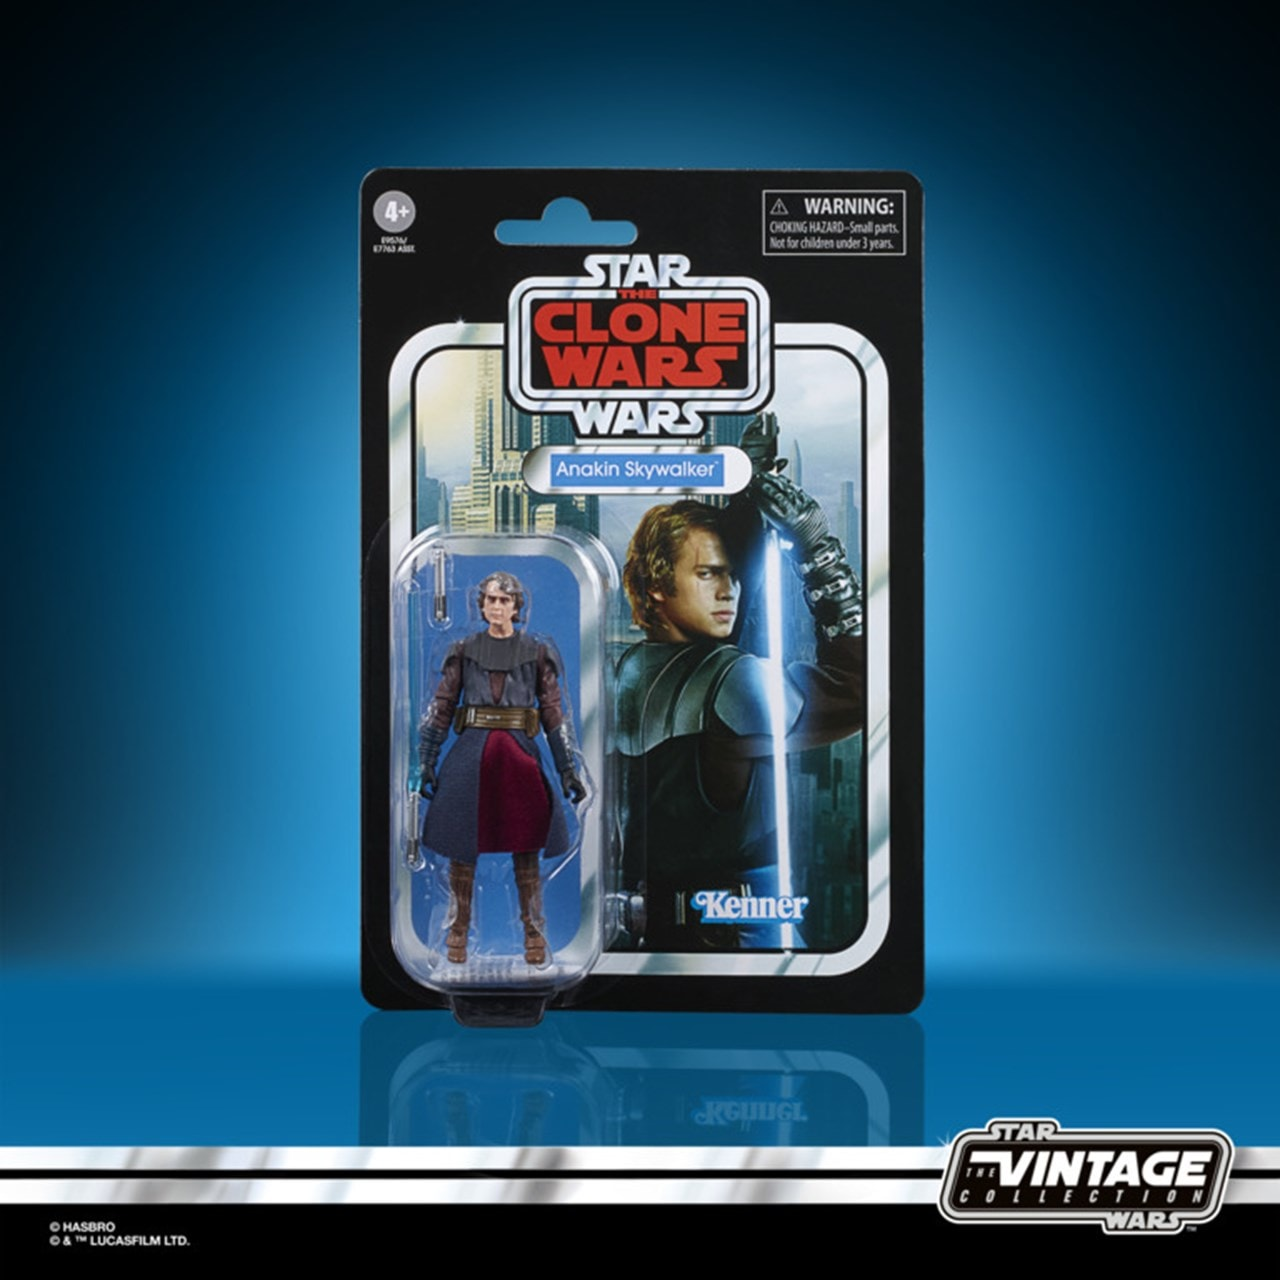 Anakin Skywalker: Clone Wars: Star Wars Vintage Action Figure - 5